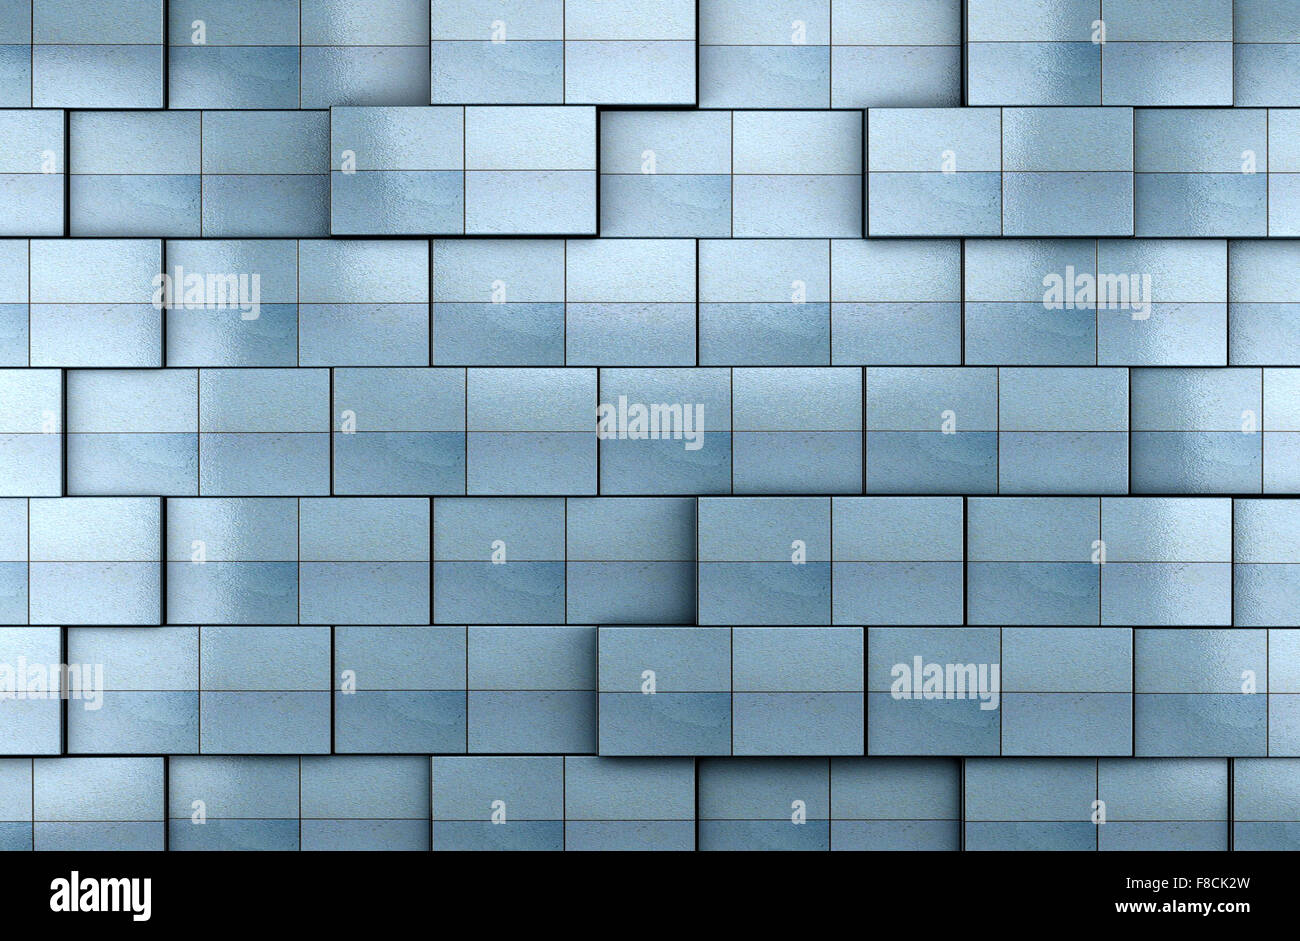 3d blue tile wall background Stock Photo: 91247489 - Alamy